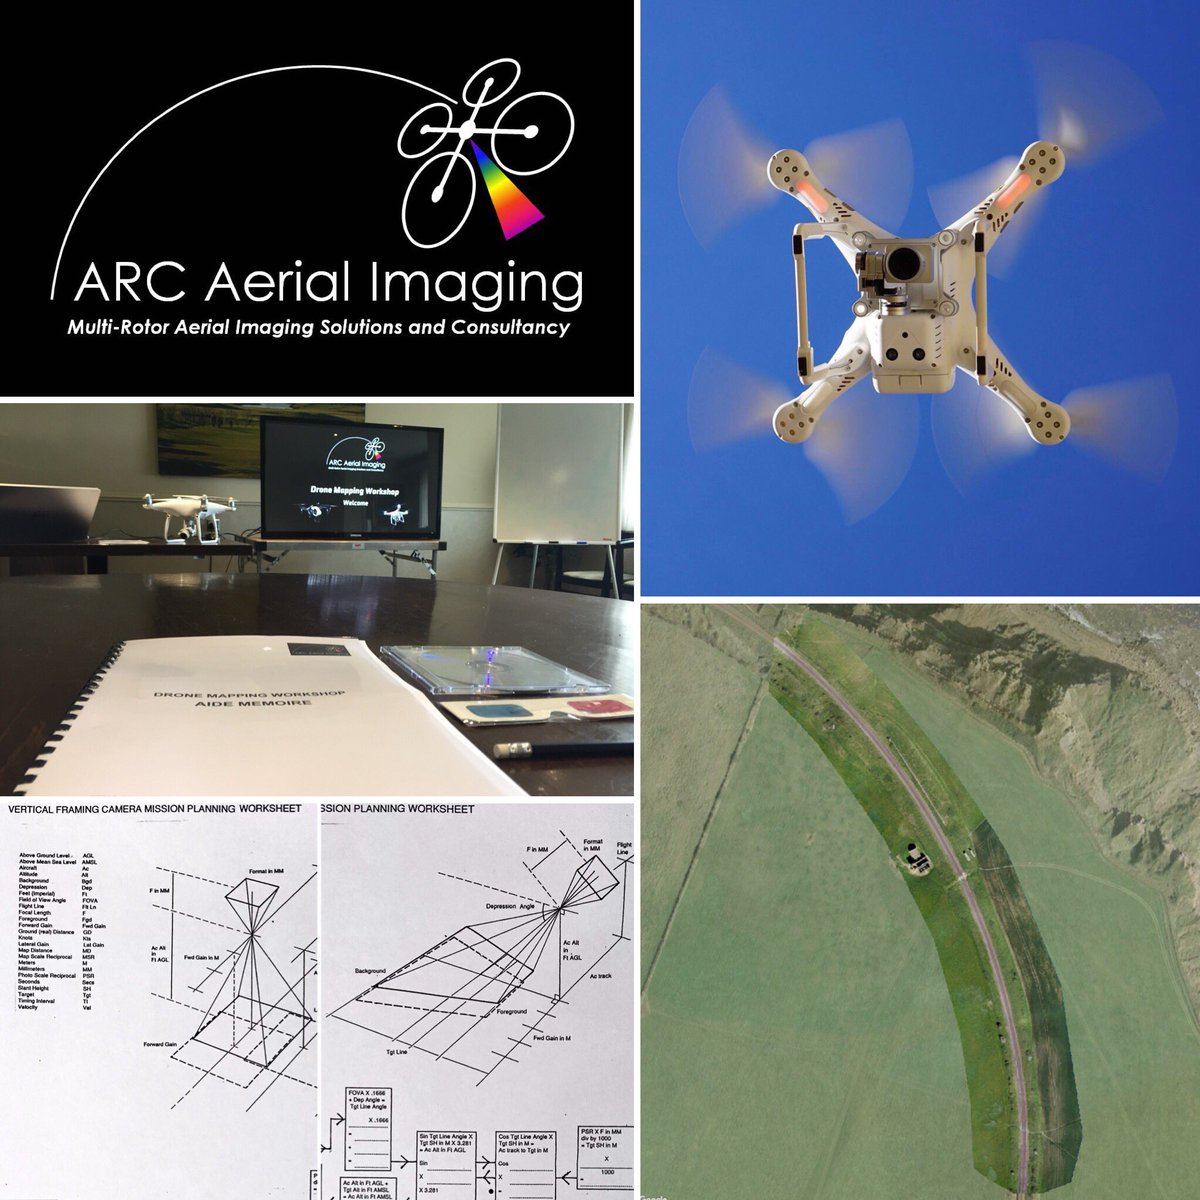 Accurately planned #drone #aerialimaging provides great #mapping results. Book a place on a #dronemapping #workshop.  http://www. arcaerialimaging.com/drone-mapping- workshop/ &nbsp; … <br>http://pic.twitter.com/d6mRJwcn4P